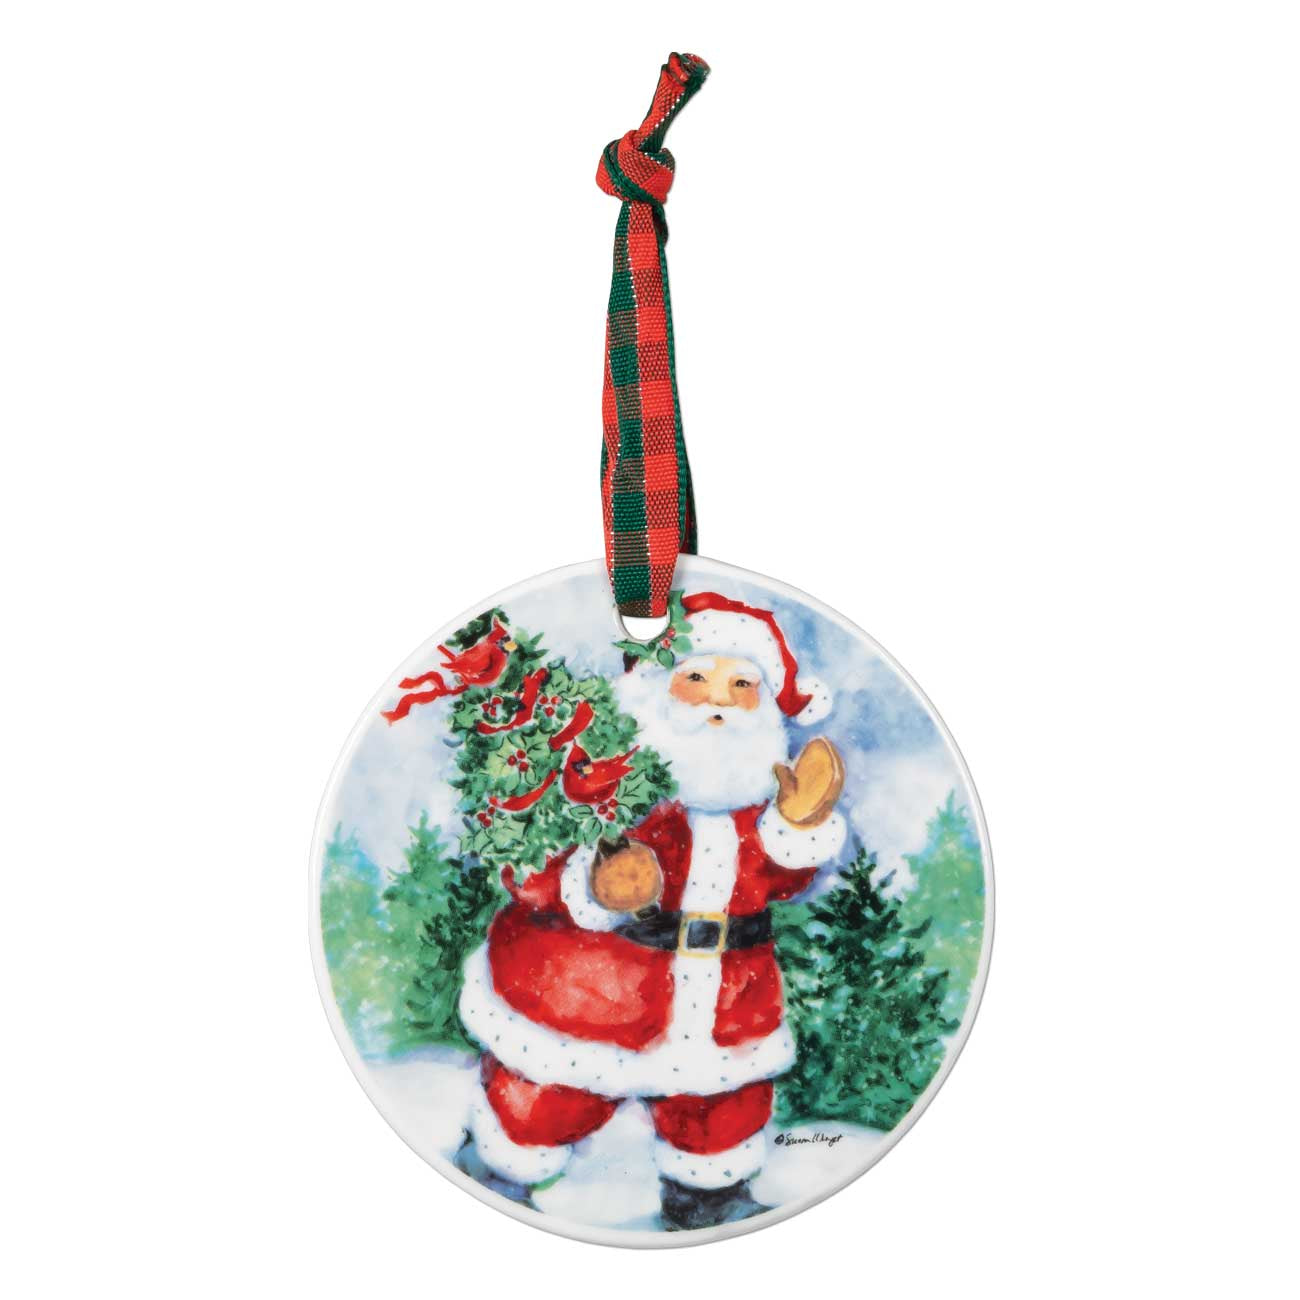 Brownlow Santa Waving Ceramic Ornament